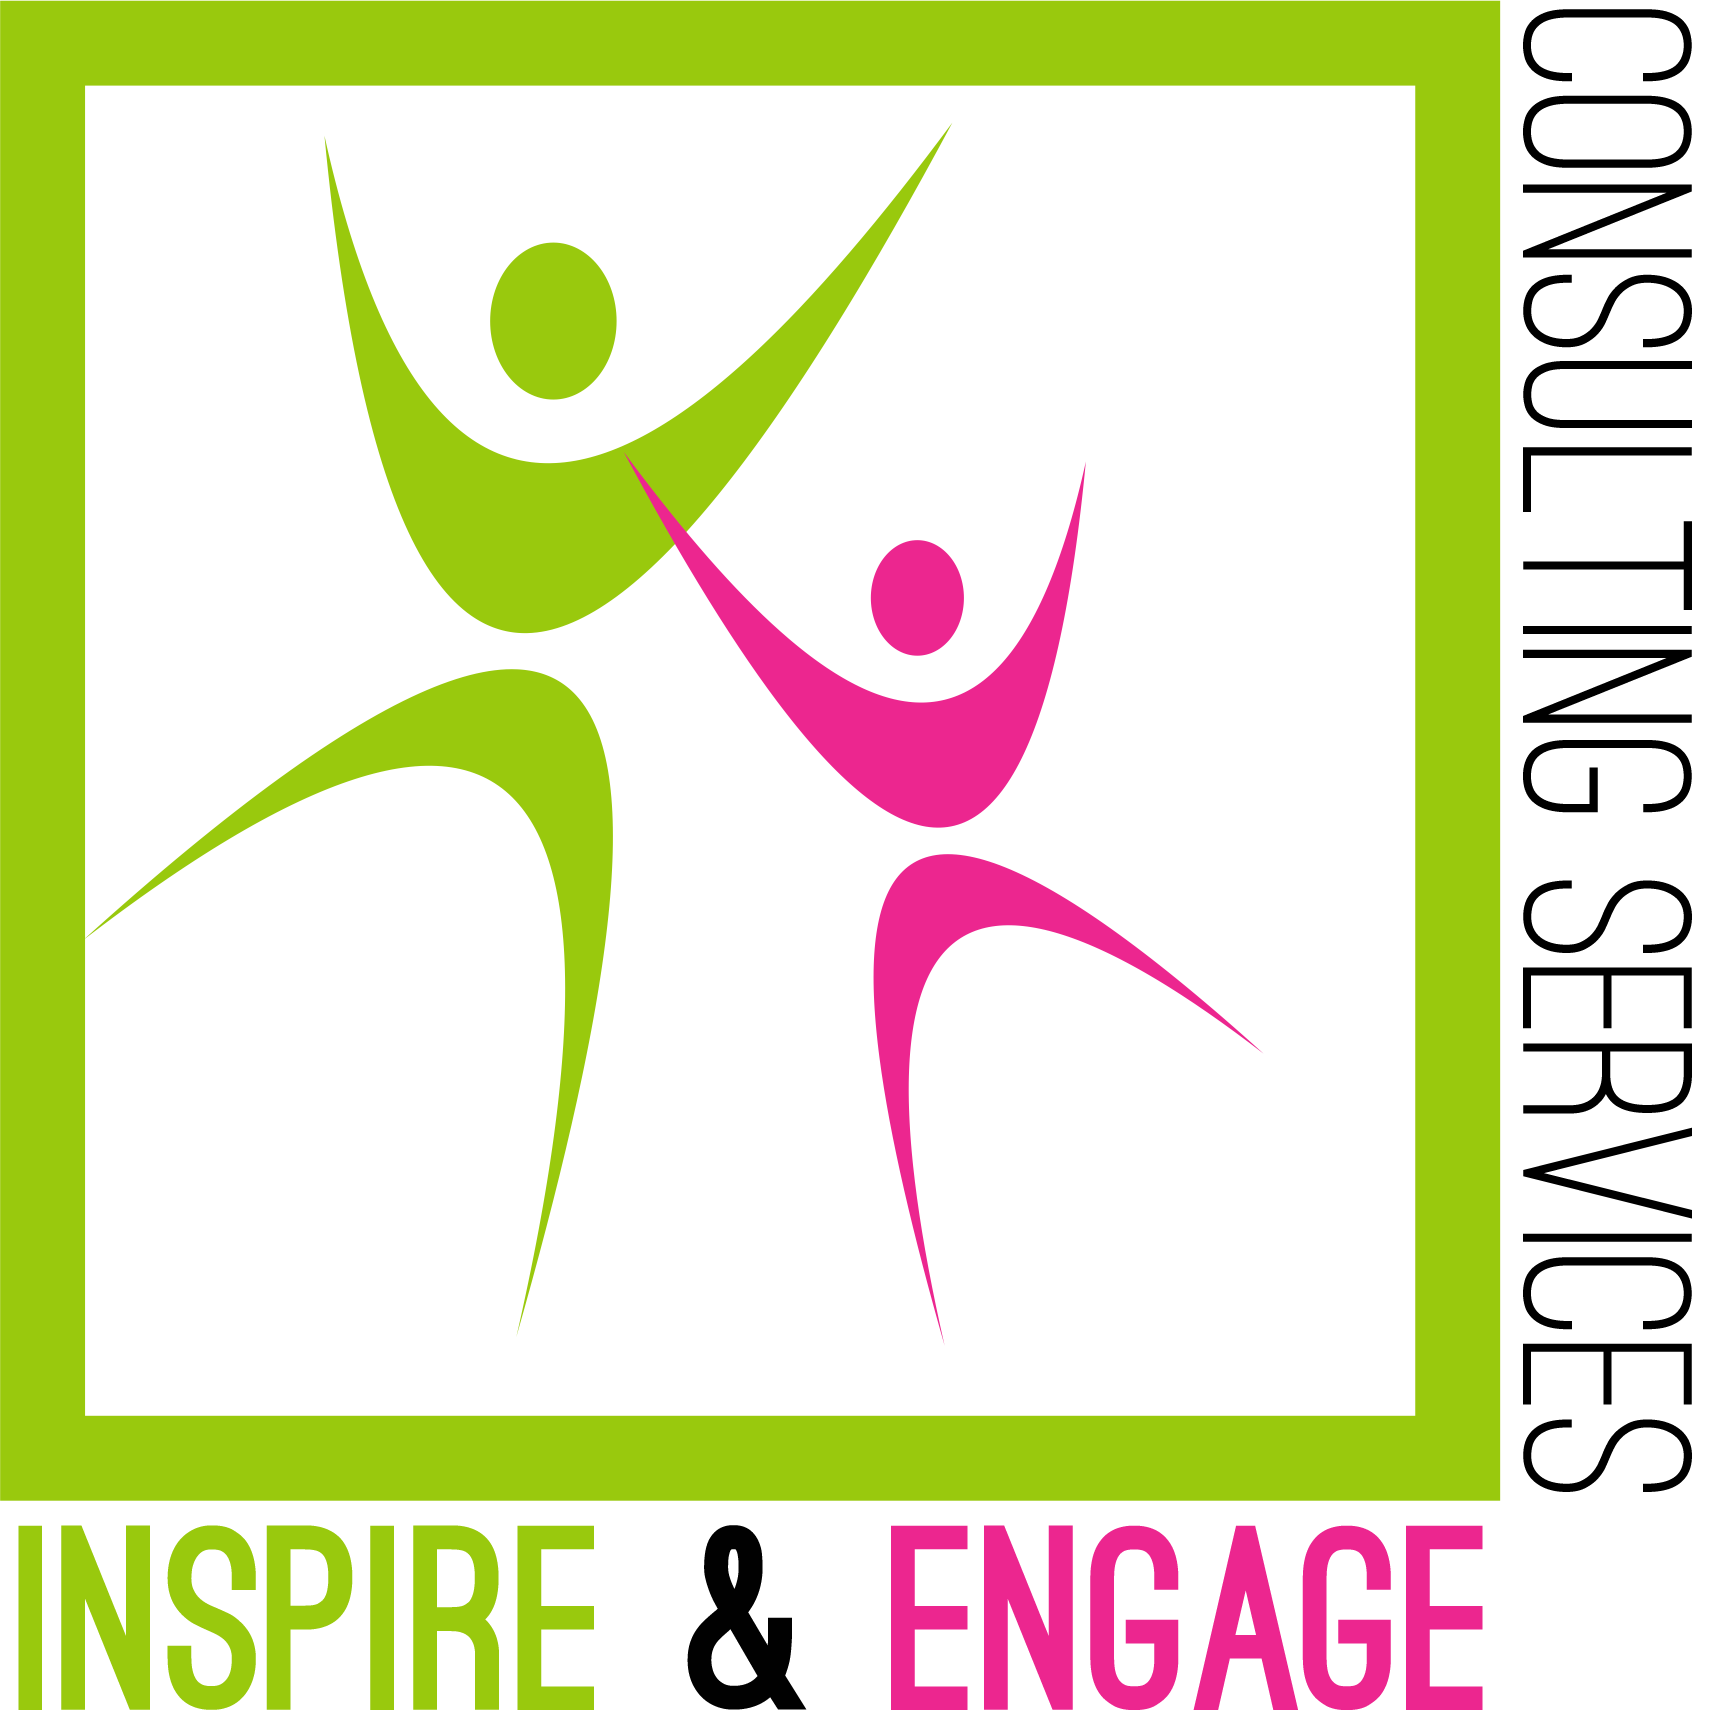 Inspire and Engage